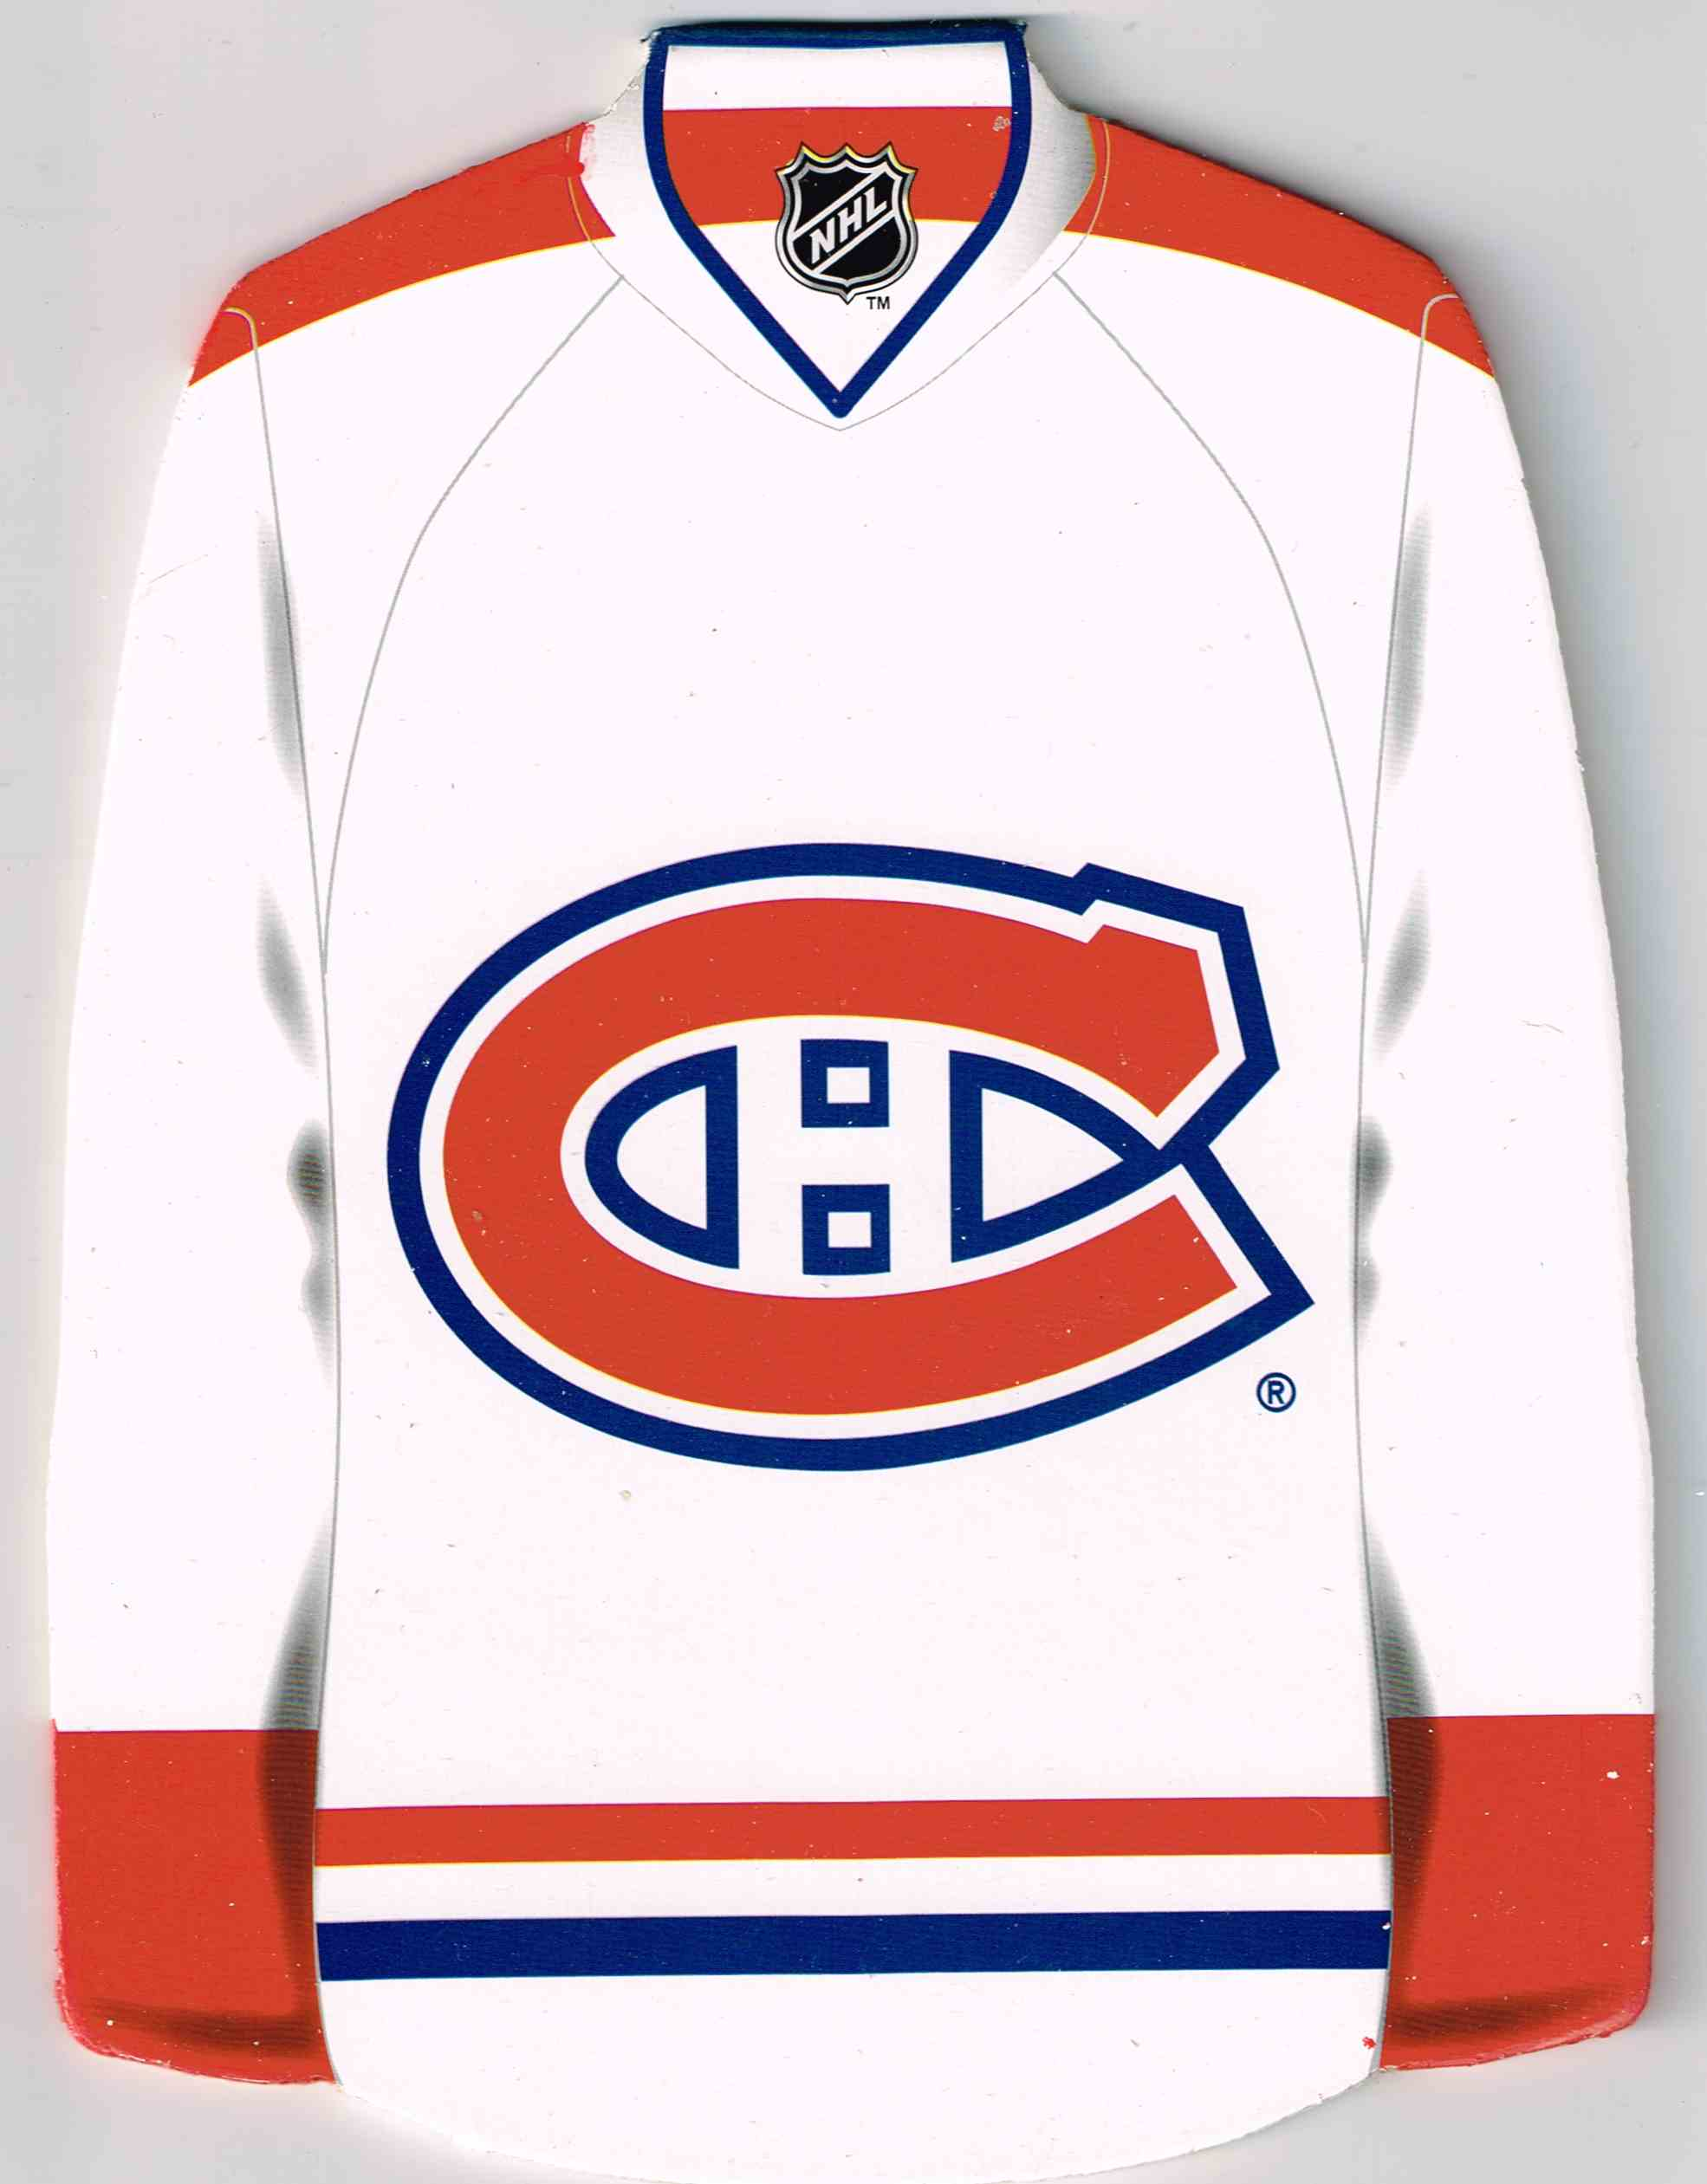 eec2e0931 2013-14 NHL Montreal Canadiens Plaque White Jersey Canadien Plaque White  Jersey  8.3